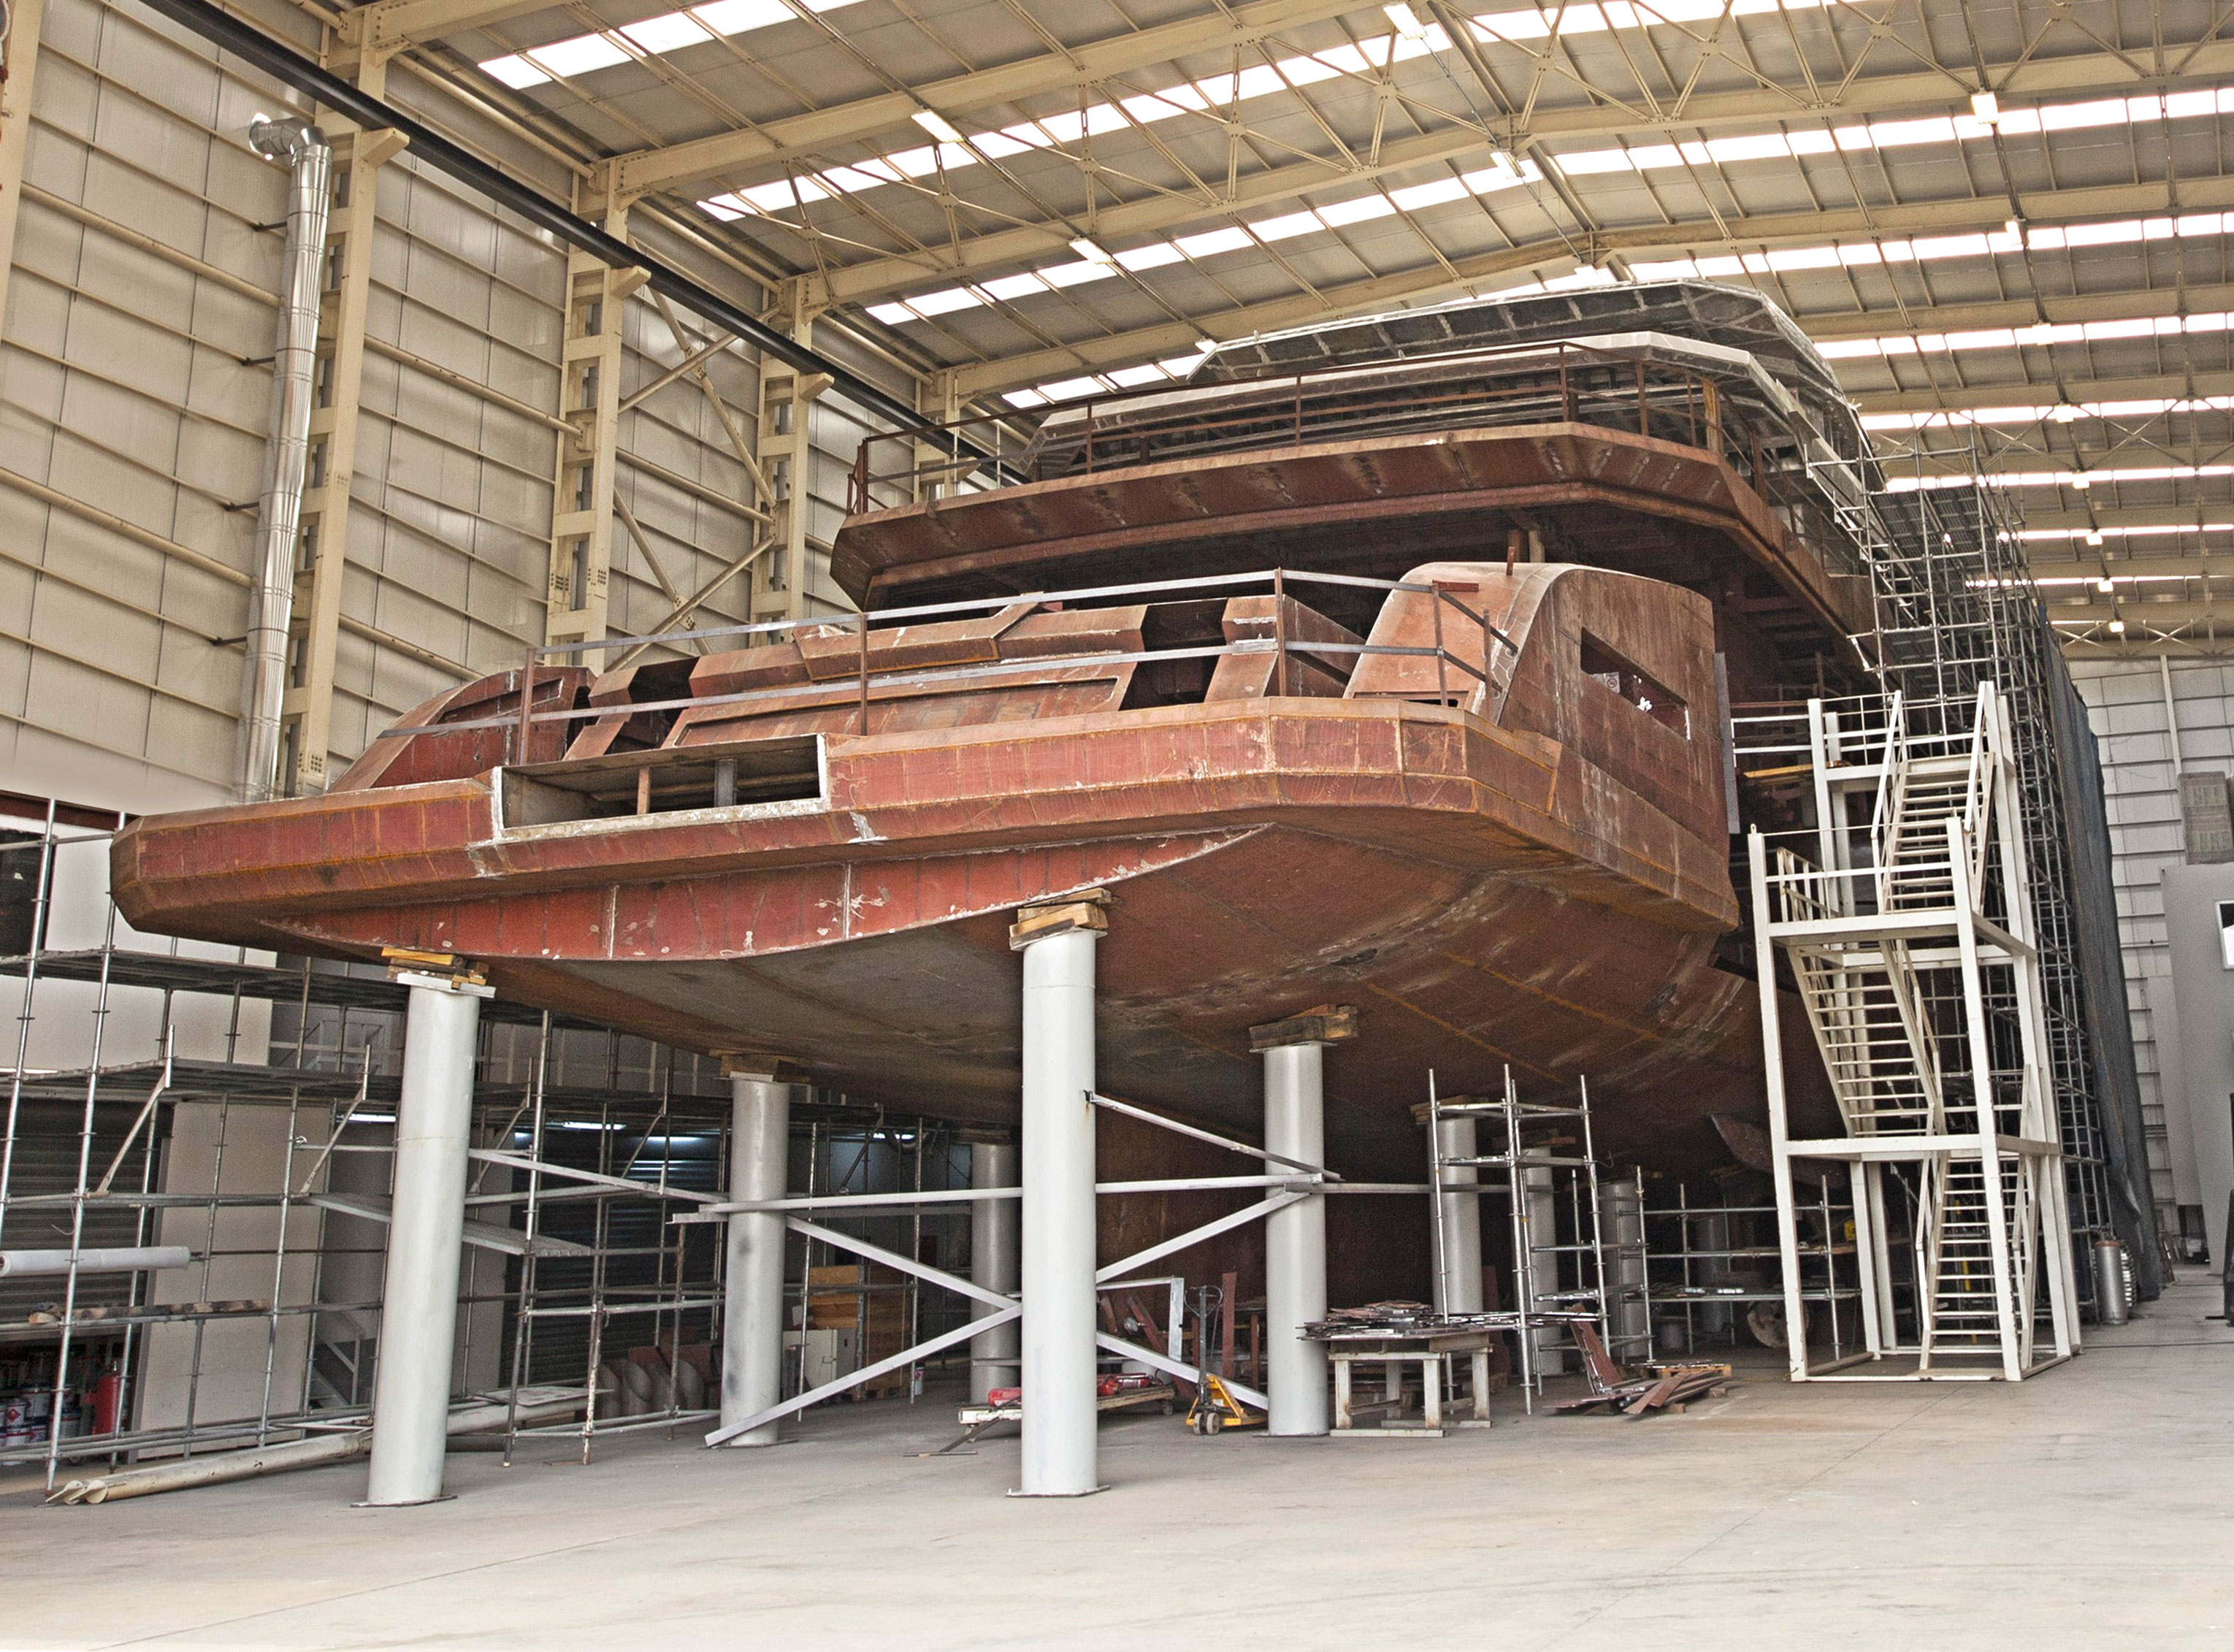 Explorer yacht DAYS under construction at the AES Yachts shipyard